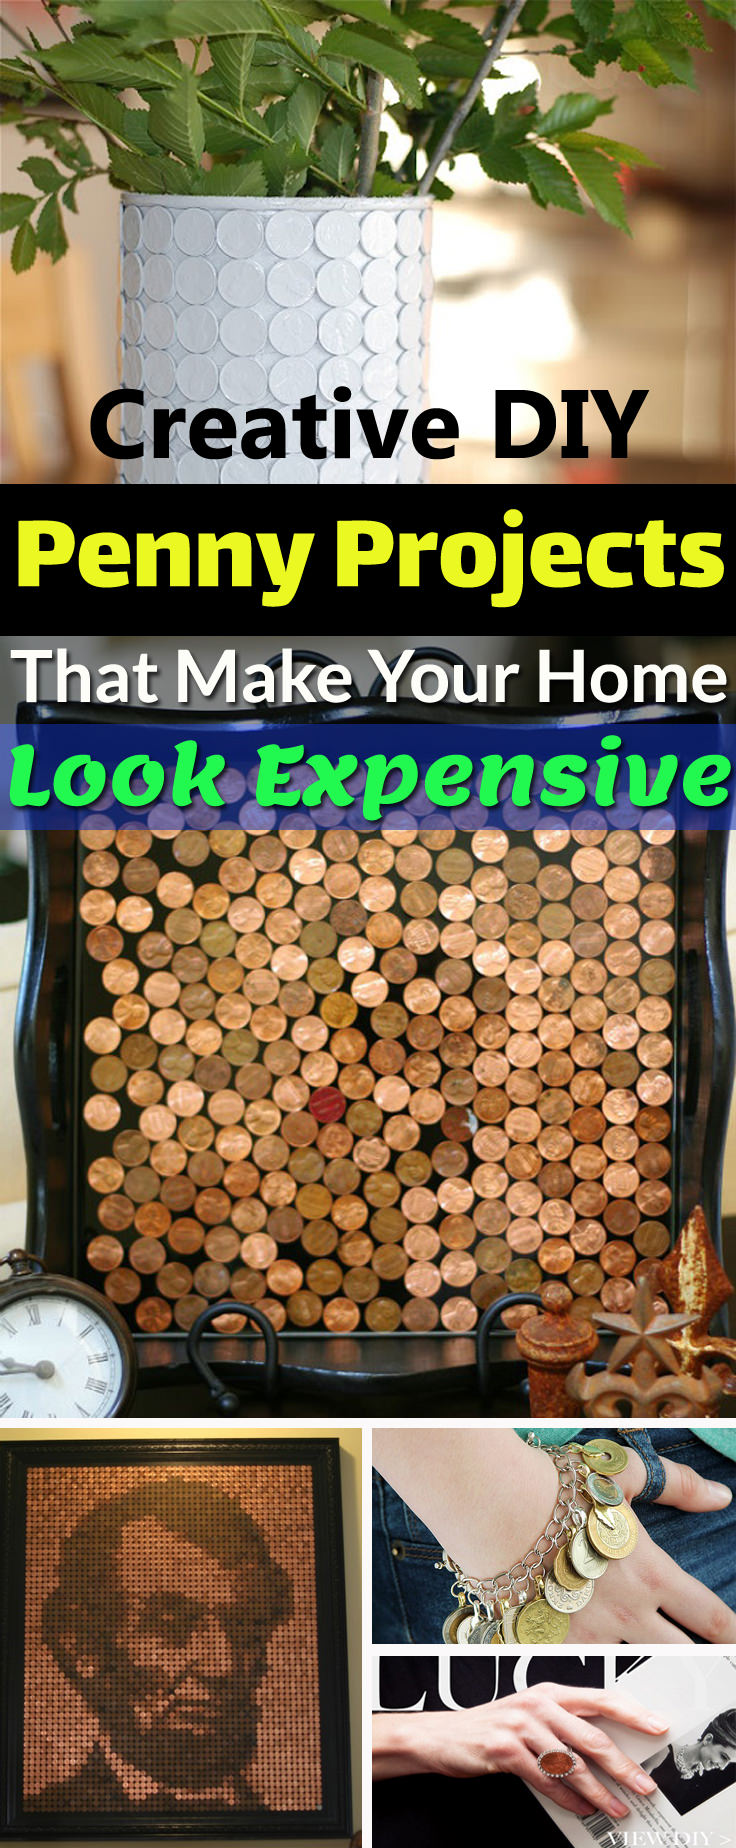 Pennies make great materials for unique and stylish DIYs that look expensive. Try these DIY Penny projects to add a coppery touch to your home.